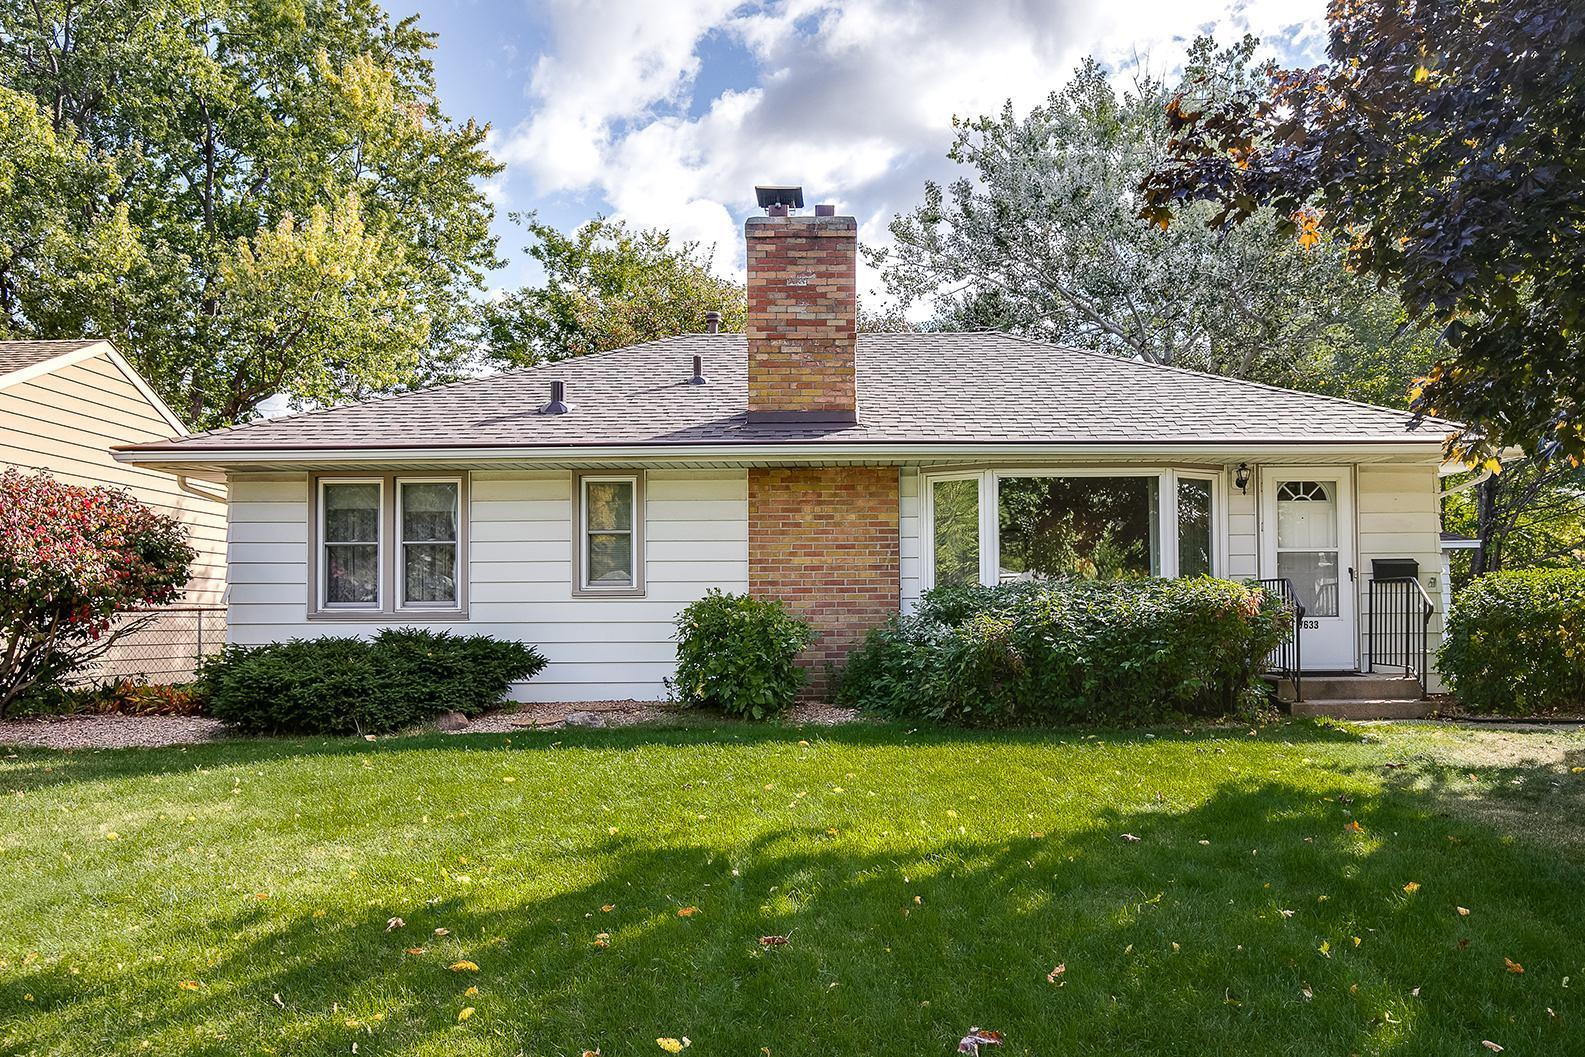 A G Bogen Co Nicollet Ave Add Real Estate Listings Main Image